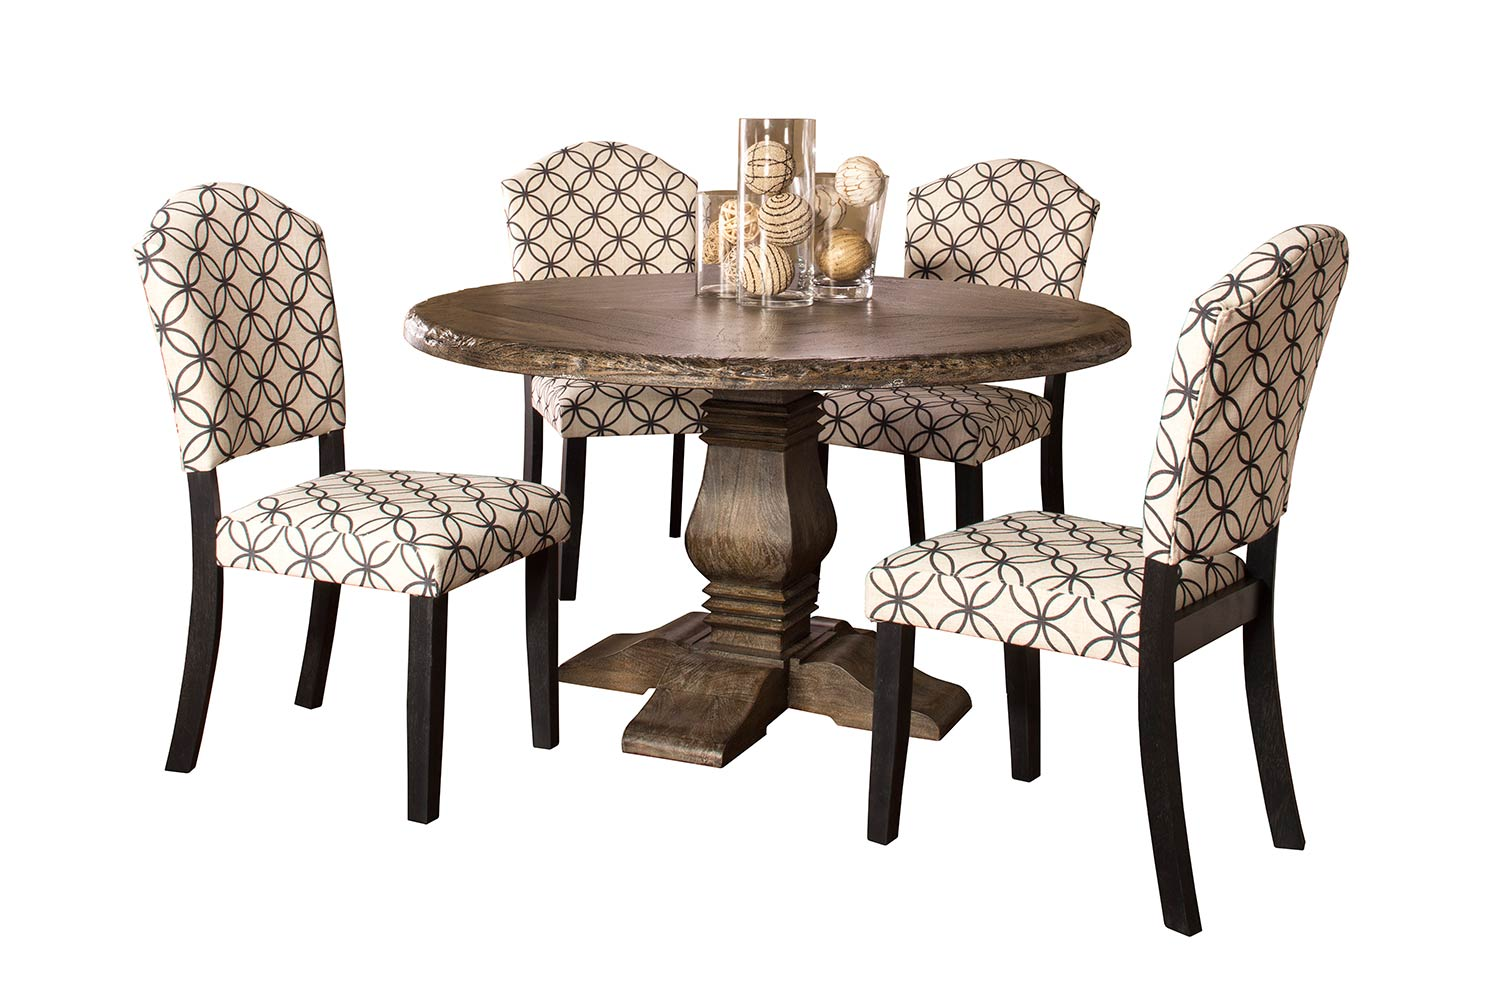 dining set with parsons chairs washed charcoal gray 38 5h x 54w x